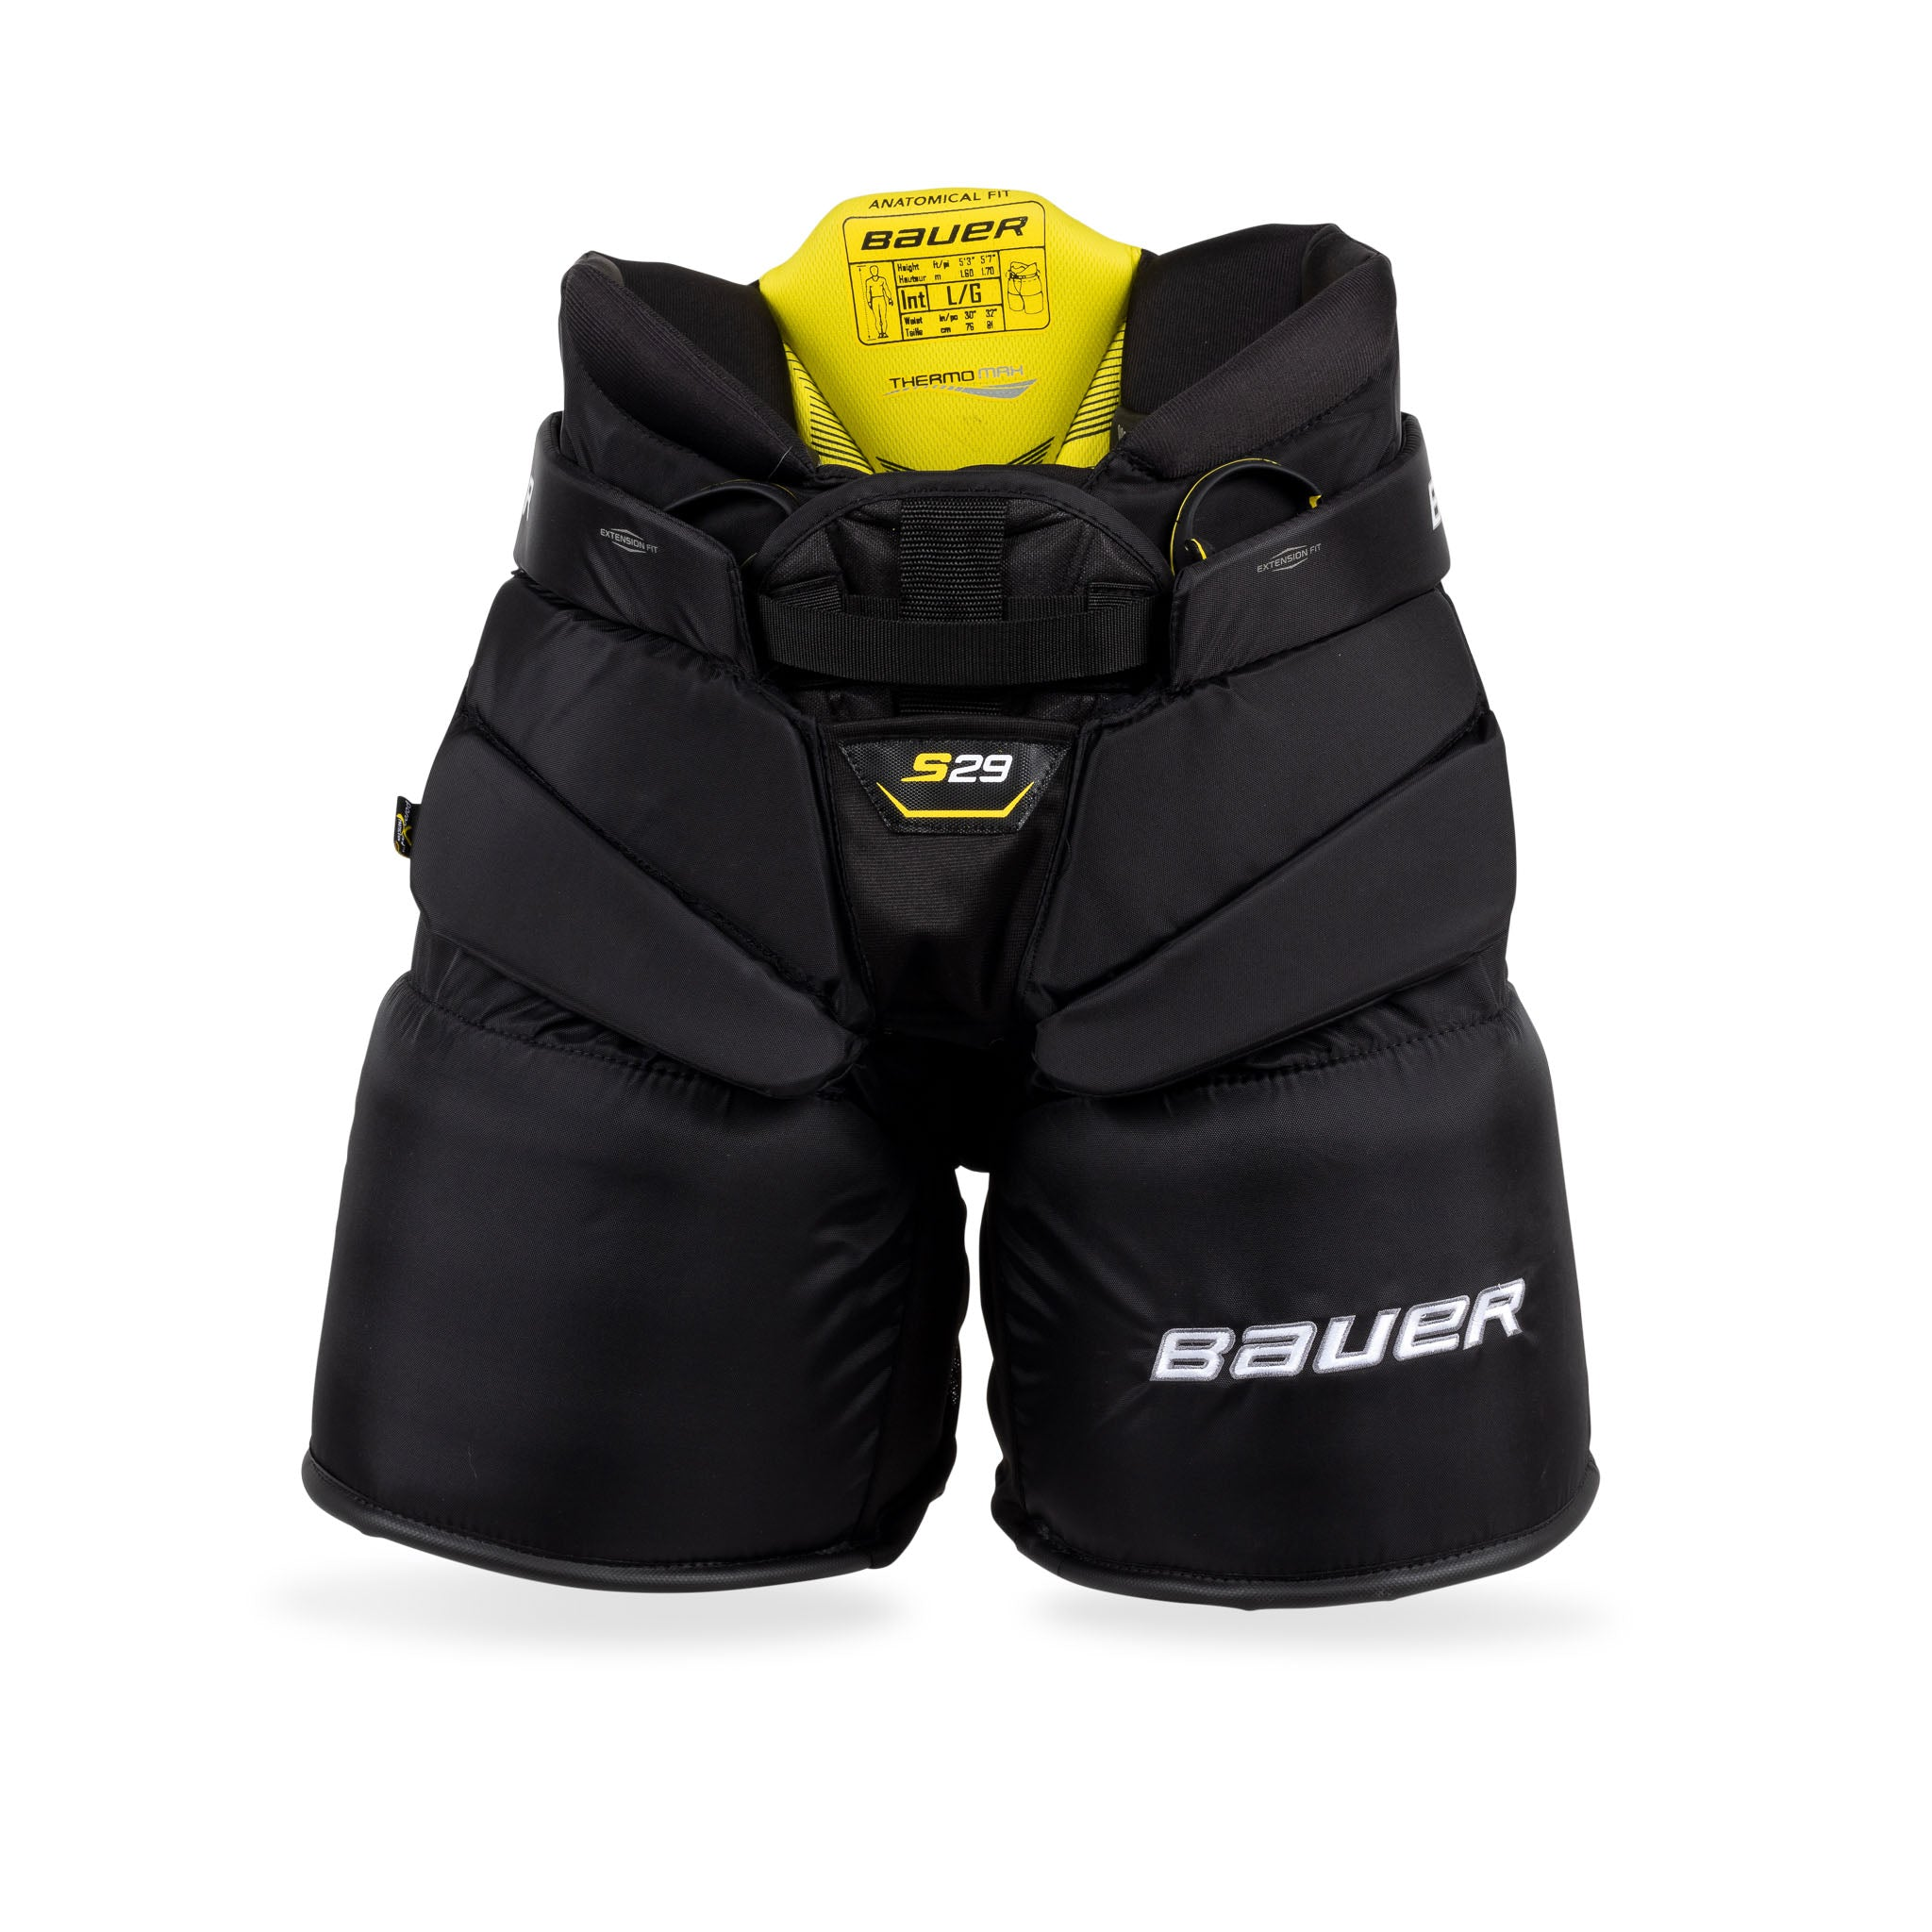 Bauer Supreme S29 Intermediate Goalie Pants